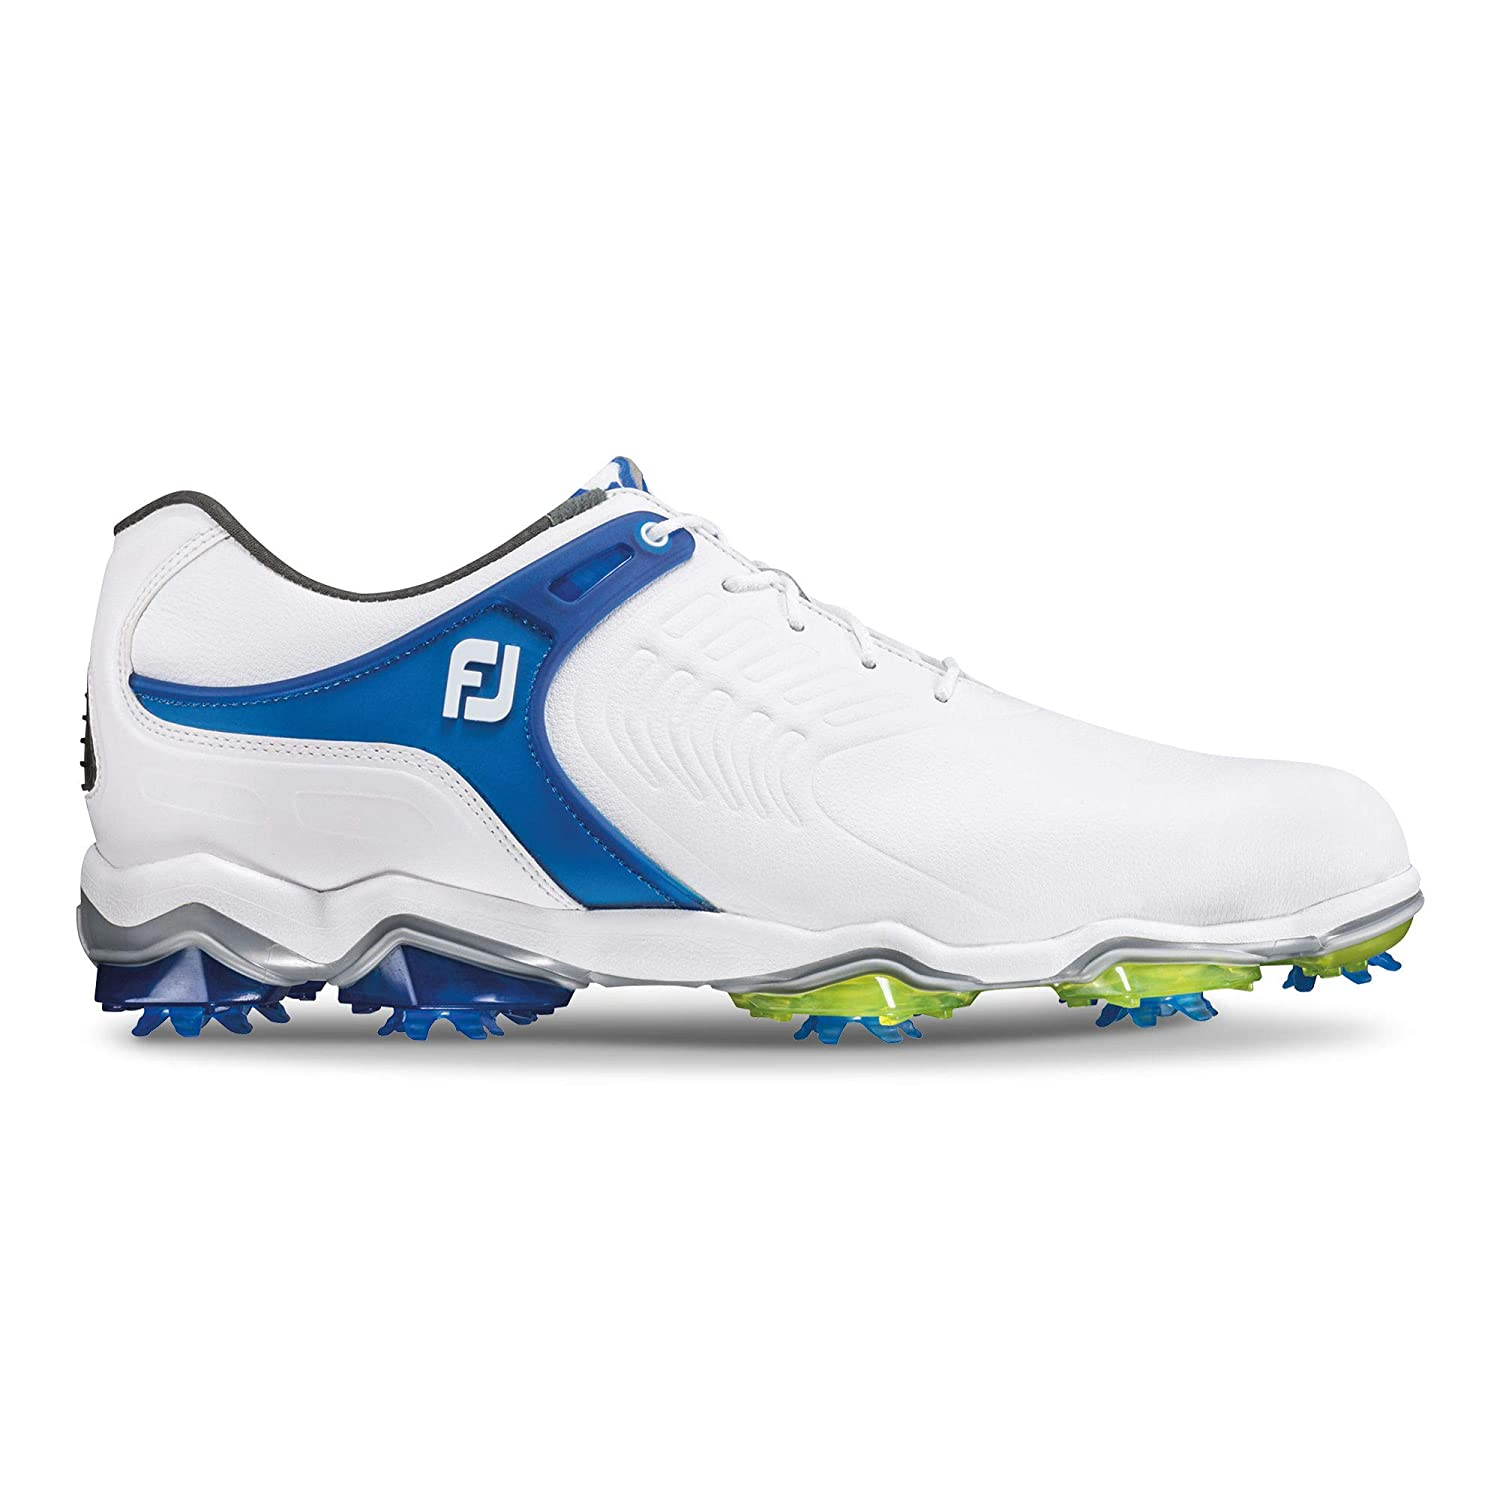 FootJoy Men s Tour-s Golf Shoes-Previous Seaon Style